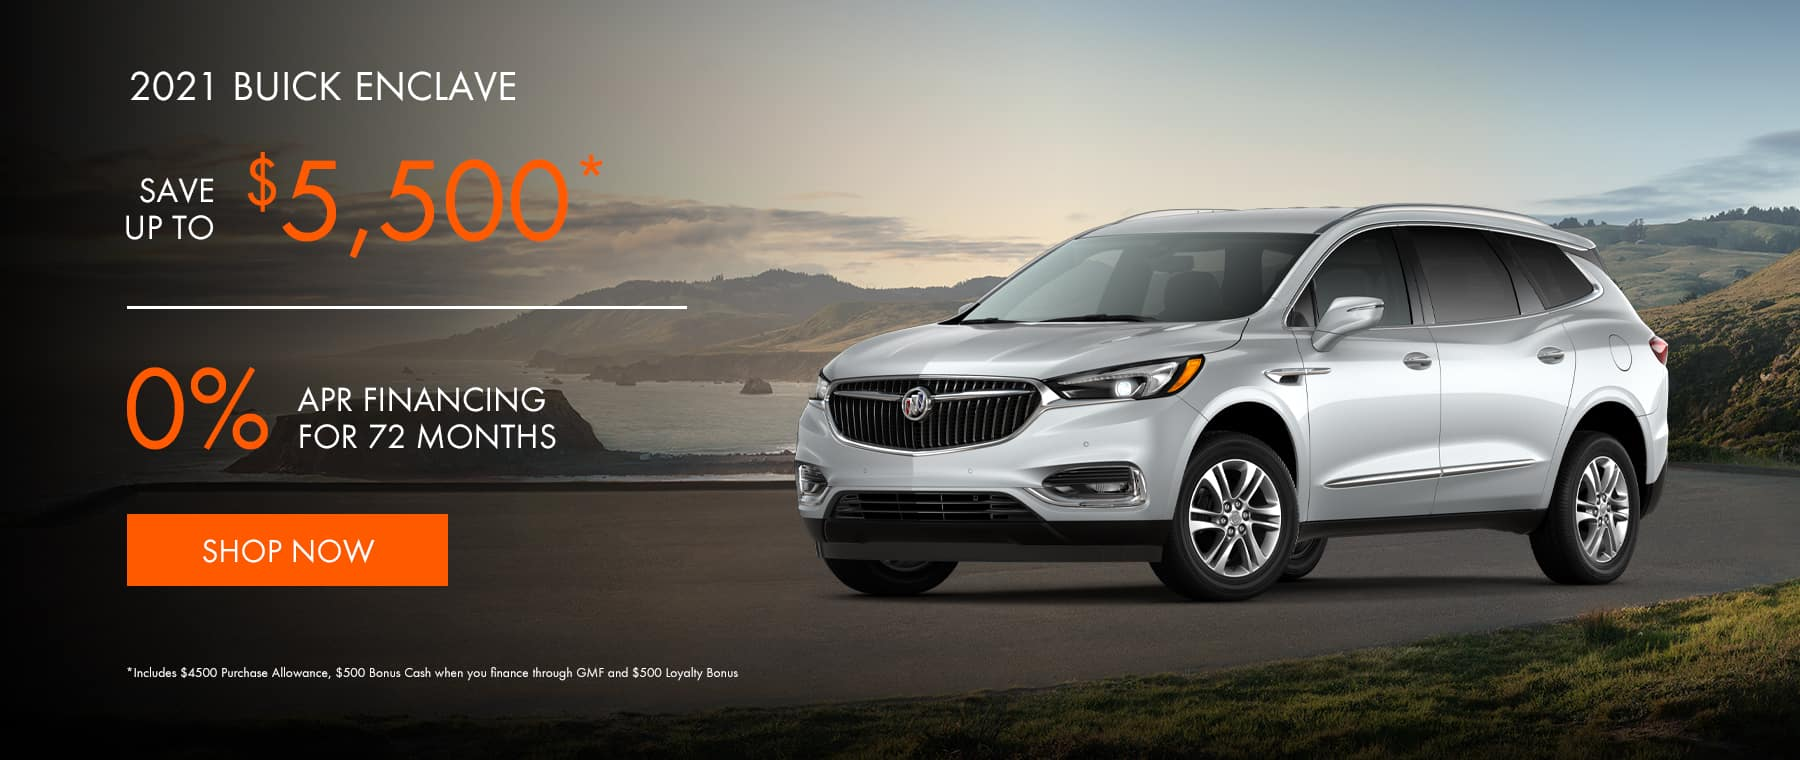 2021 Buick Enclave - ave up to $5,500* OR Get 0% Financing for 72 months